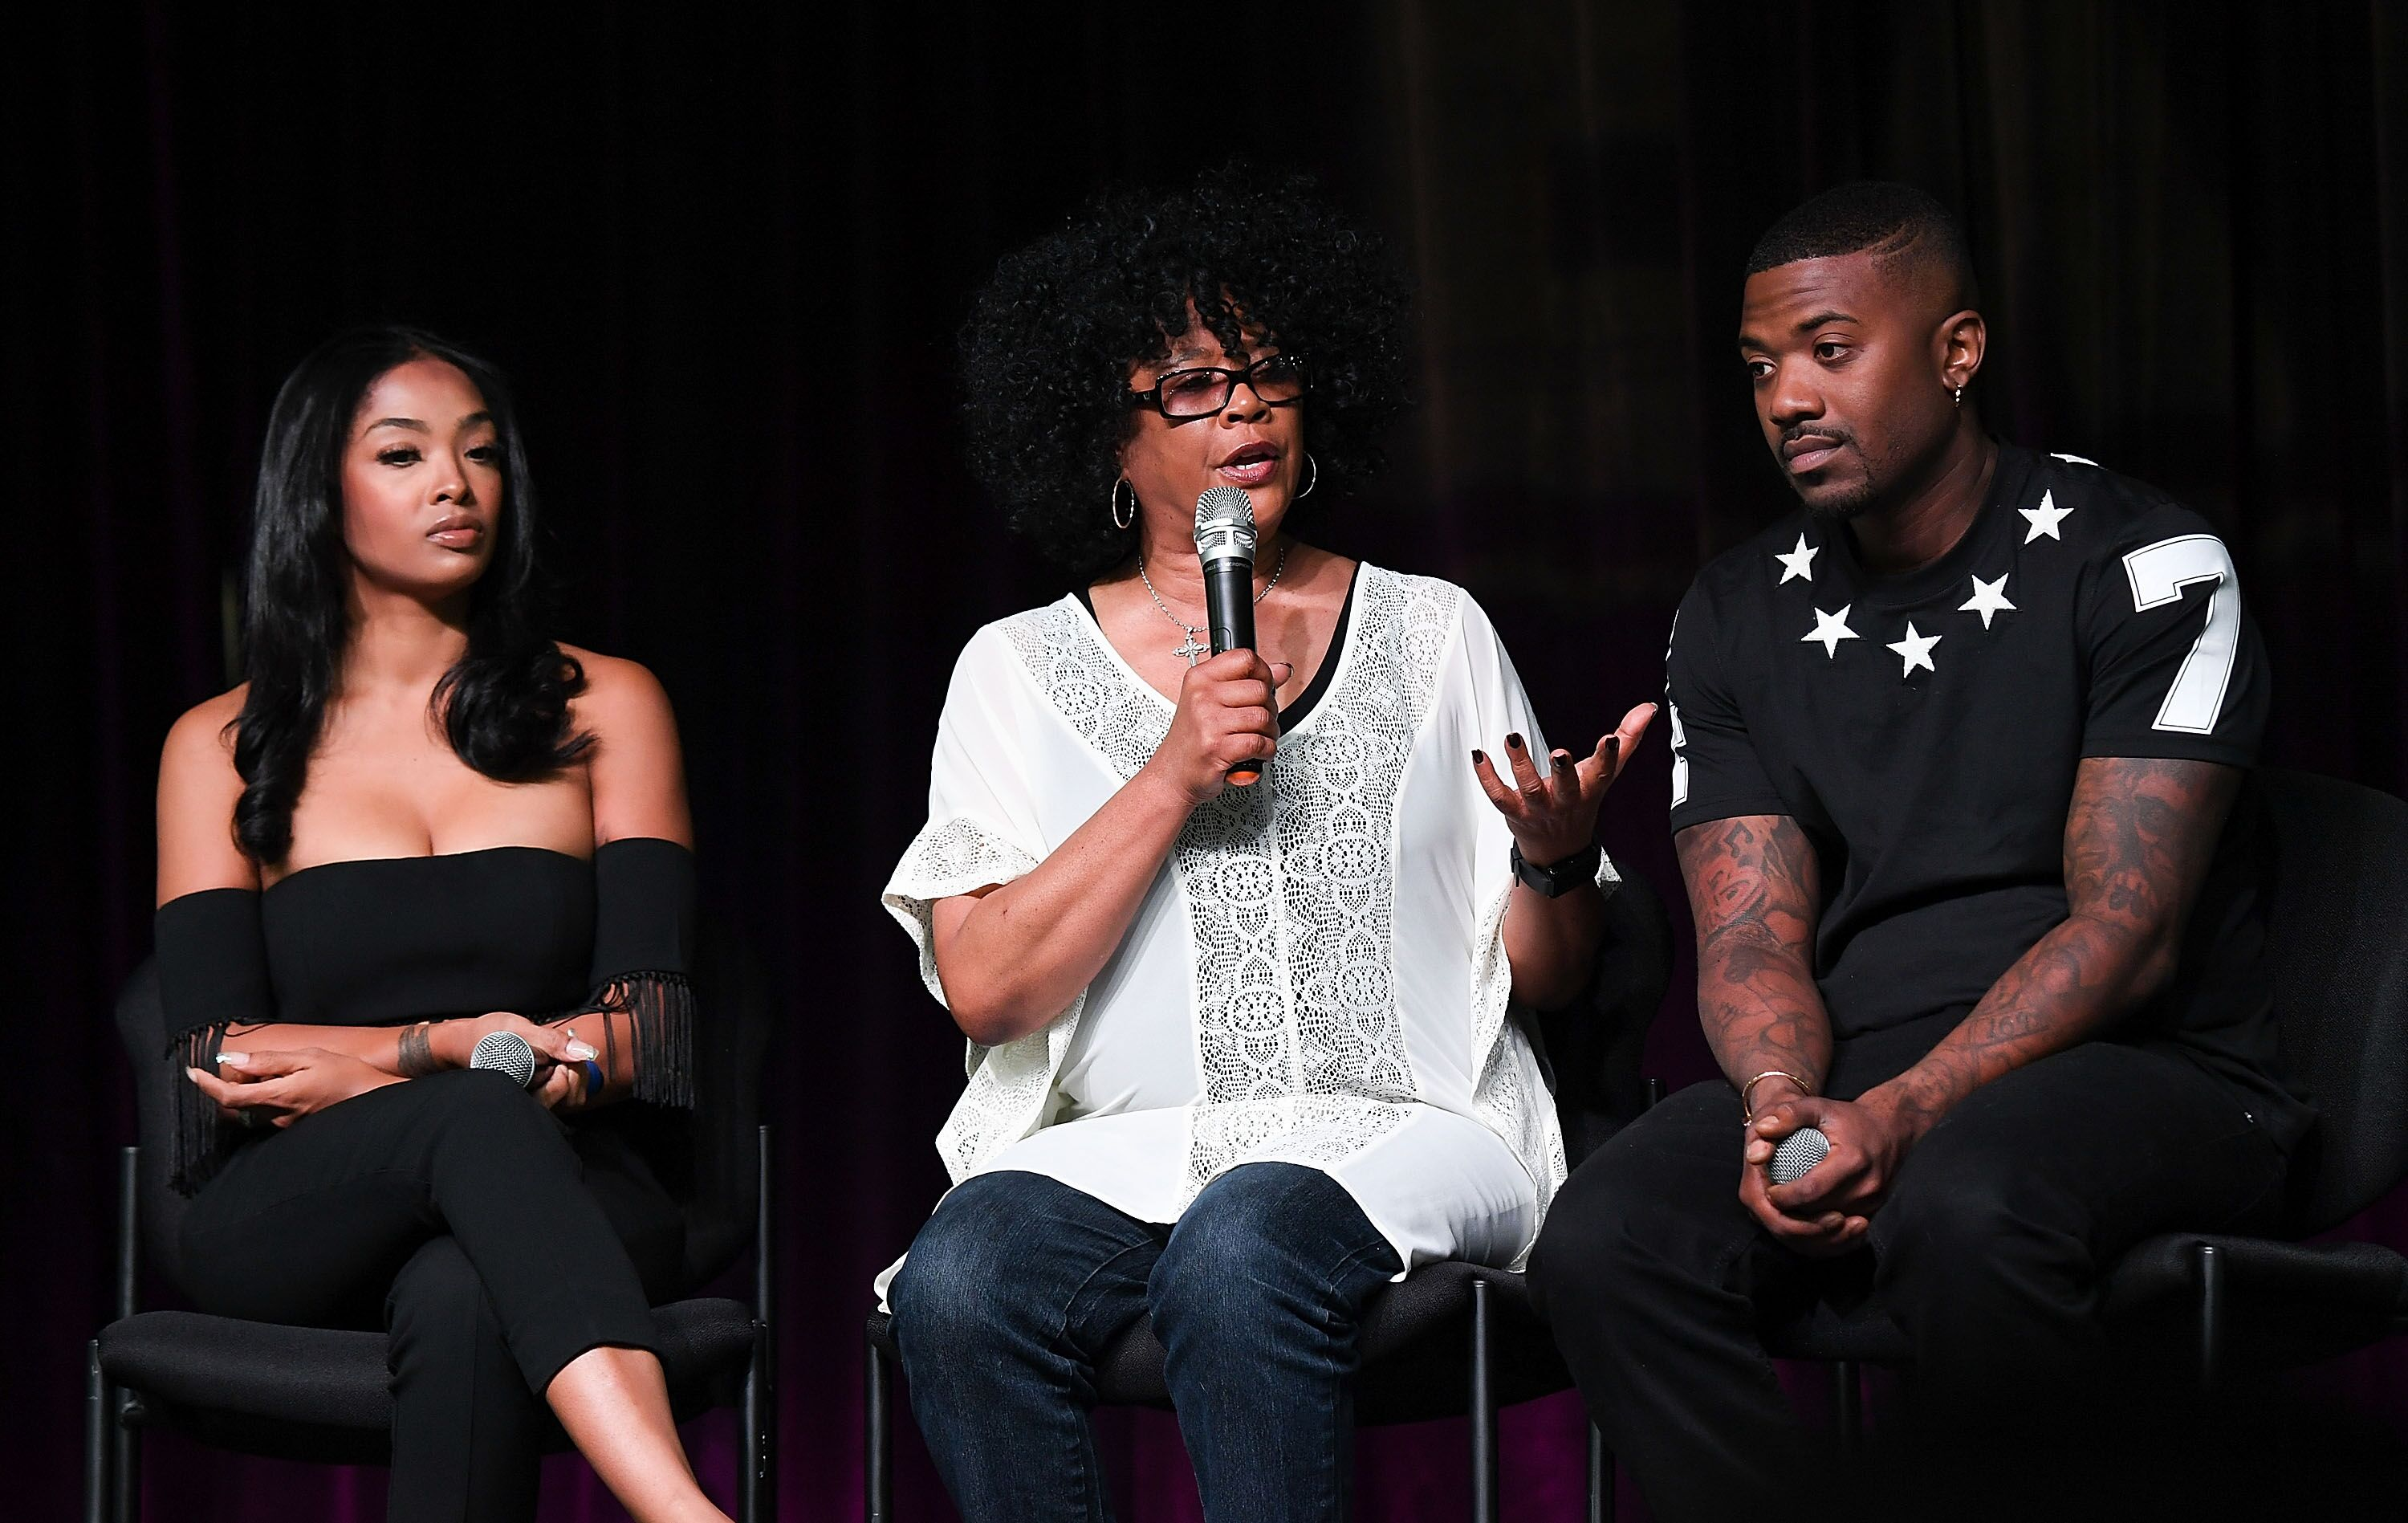 Princess Love, Sonja Norwood, and Ray J at the Atlanta Ultimate Women's Expo/ Source: Getty Images